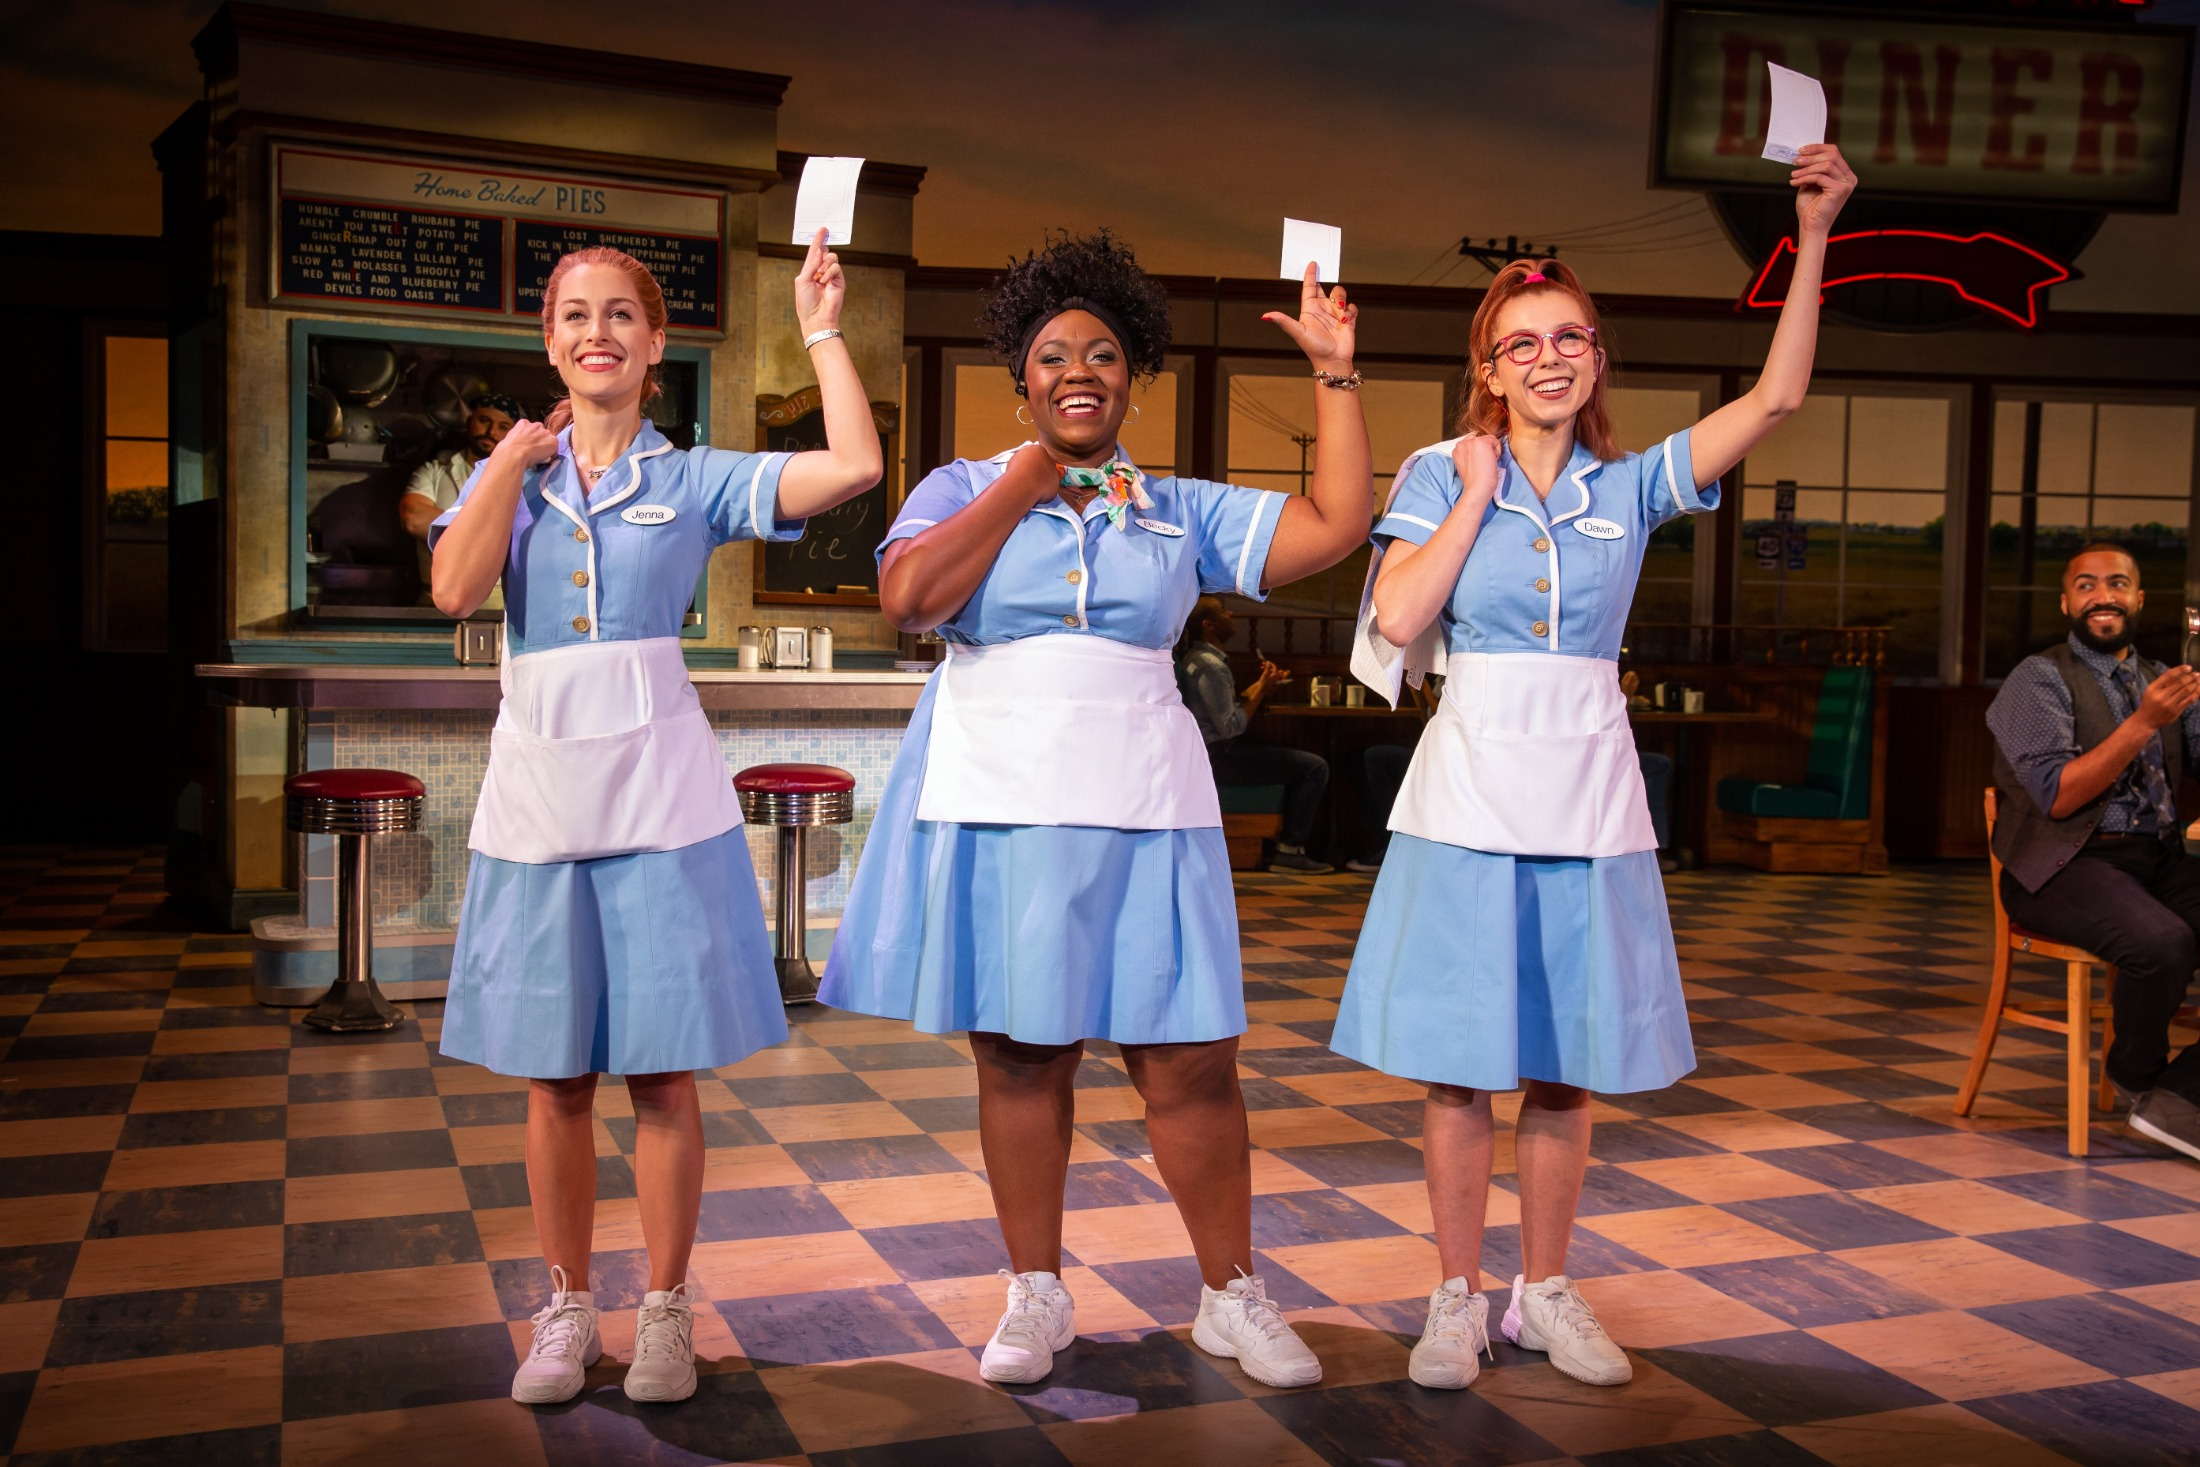 Bailey McCall as Jenna, Kennedy Salters as Becky, and Gabriella Marzetta as Dawn in the National Tour of Waitress. Photo credit: Jeremy Daniel.